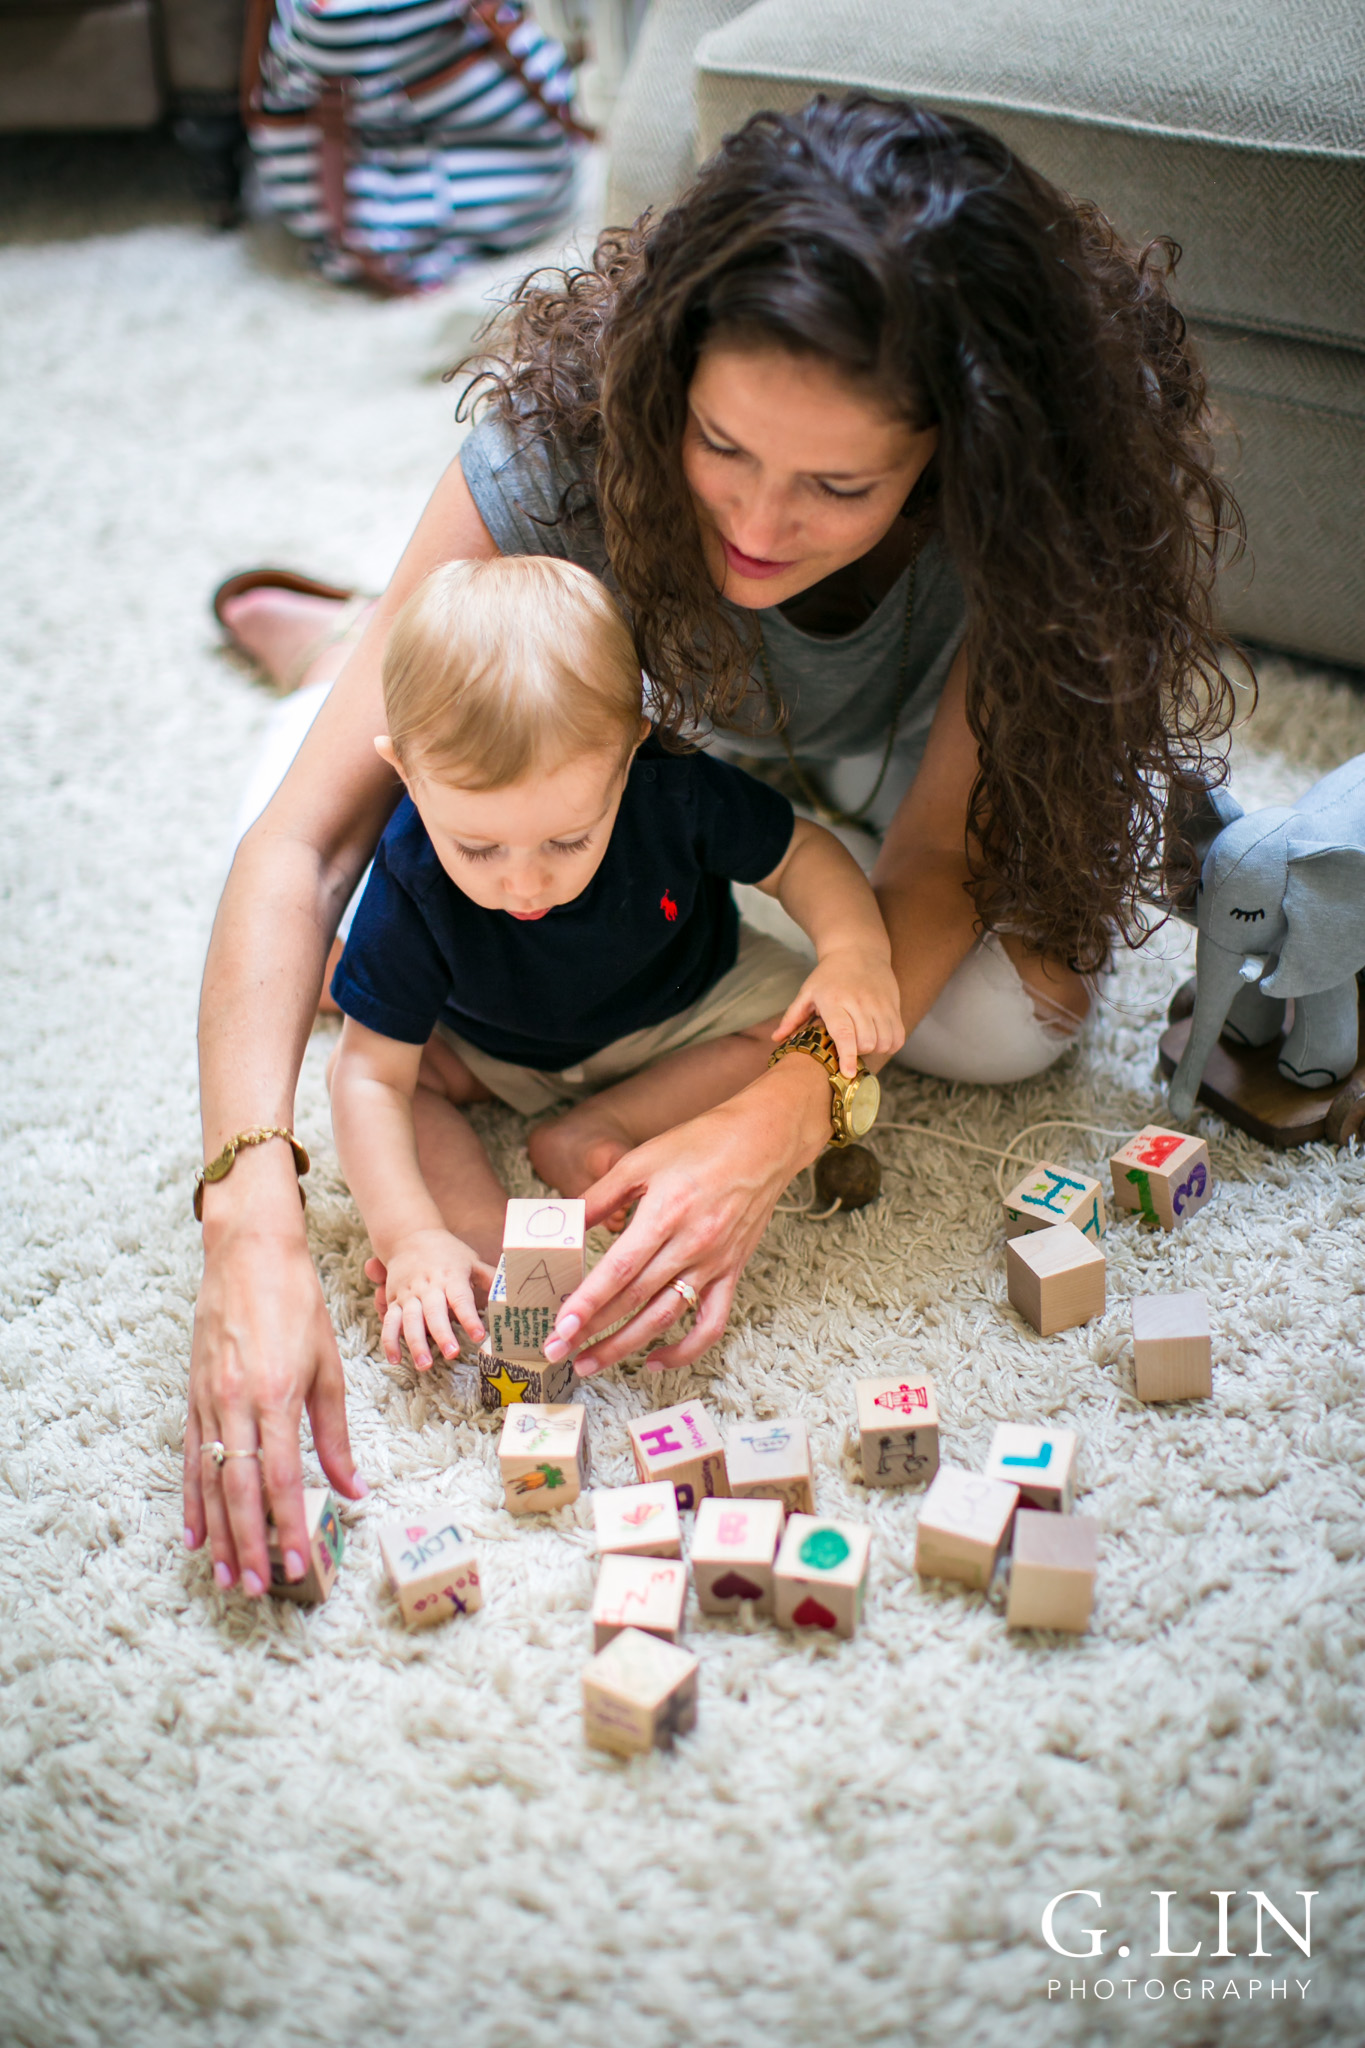 Raleigh Lifestyle Photographer | G. Lin Photography | Mom and baby playing with blocks | Close up shot